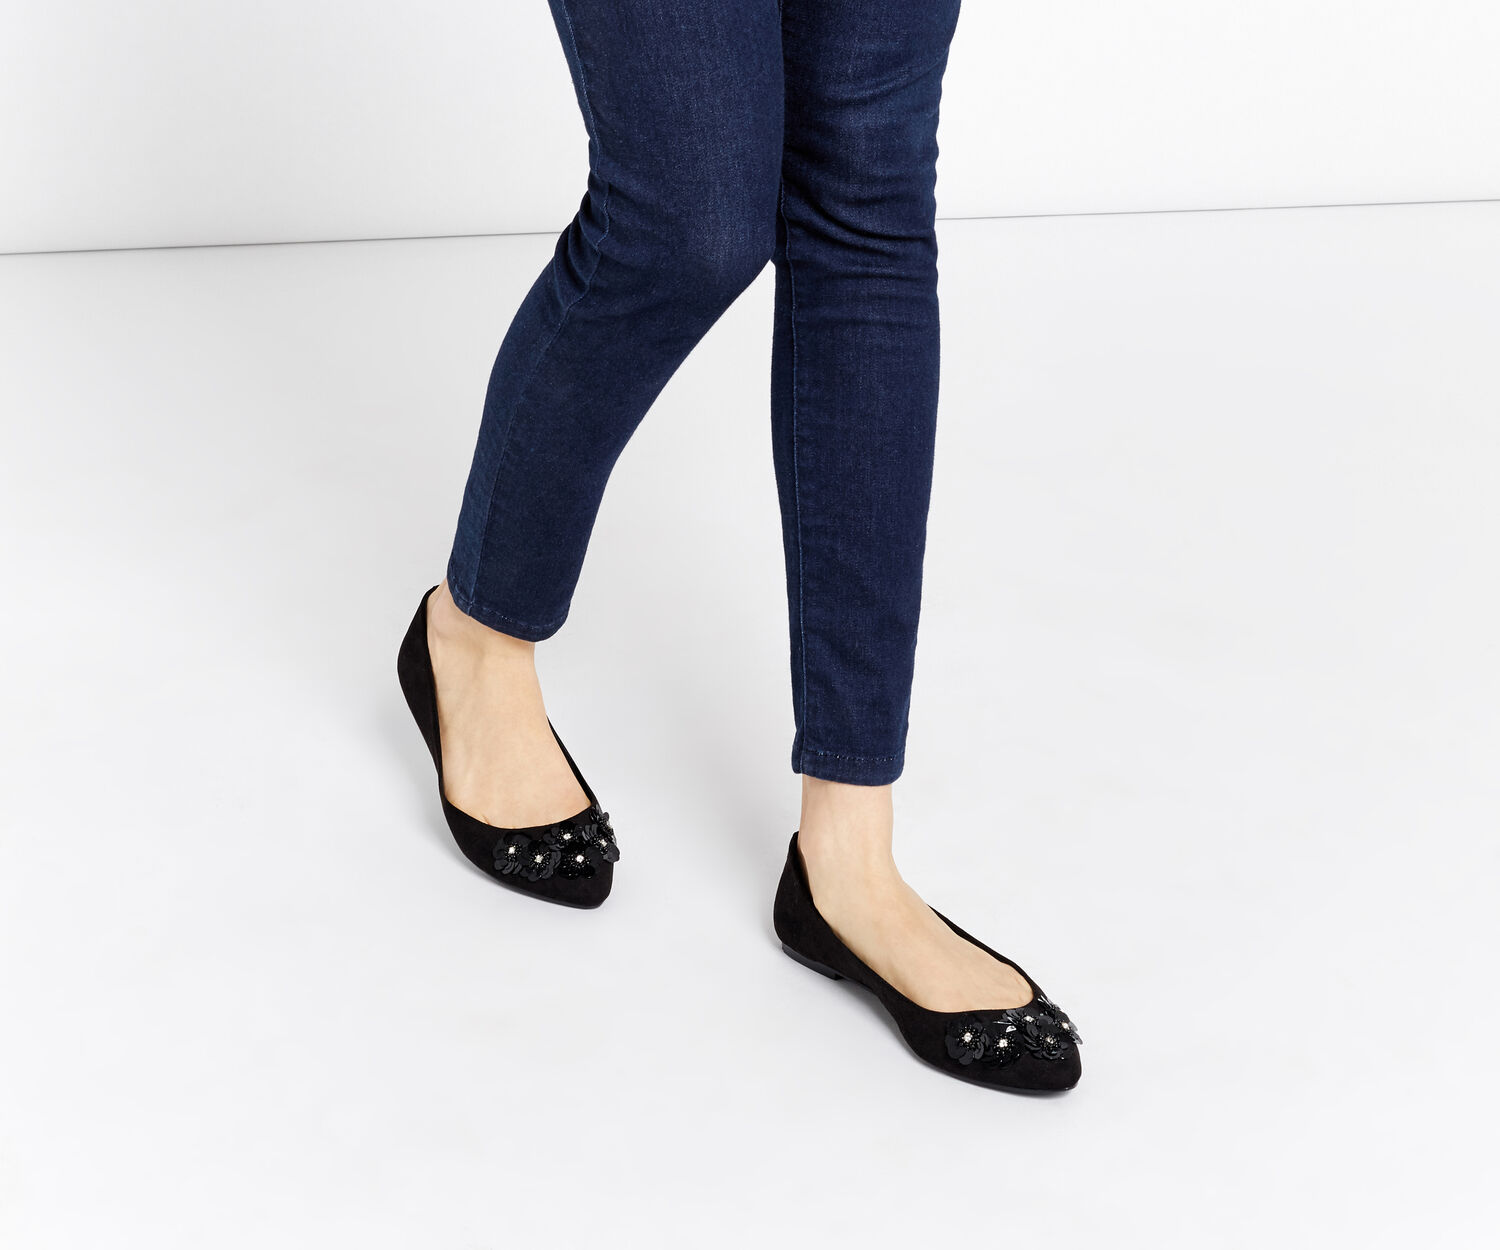 Oasis, FRANCESCA FLOWER FLATS Black 1